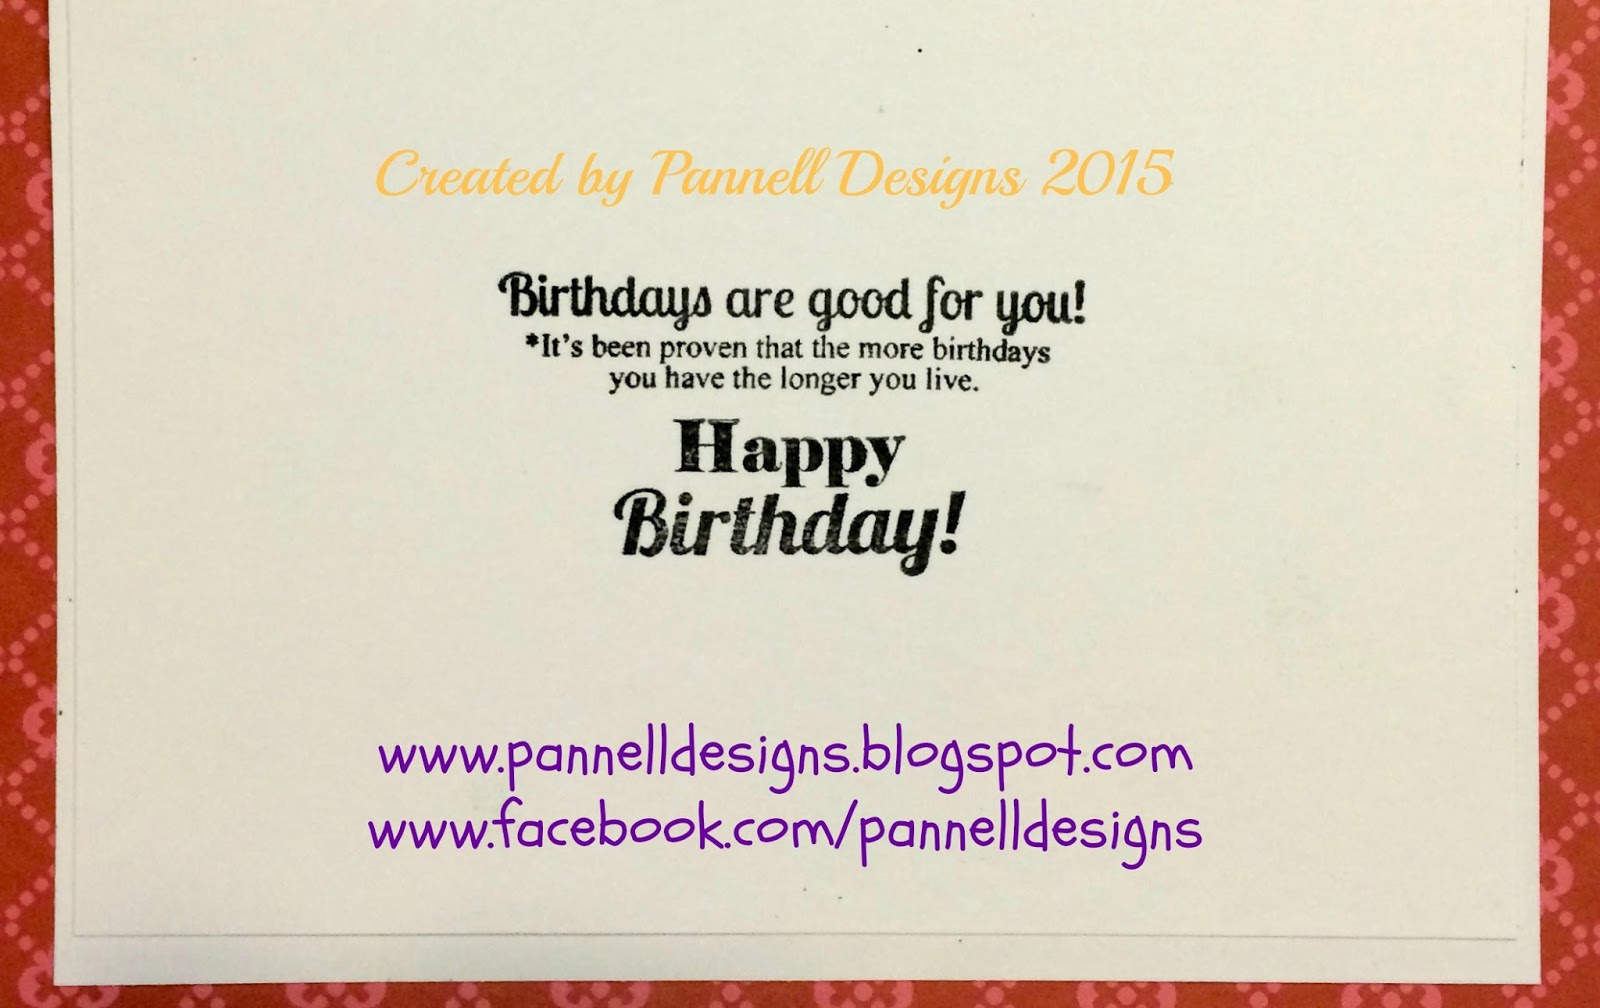 Pannell designs paper crafting sour patch kids birthday card sour patch kids birthday card bookmarktalkfo Choice Image